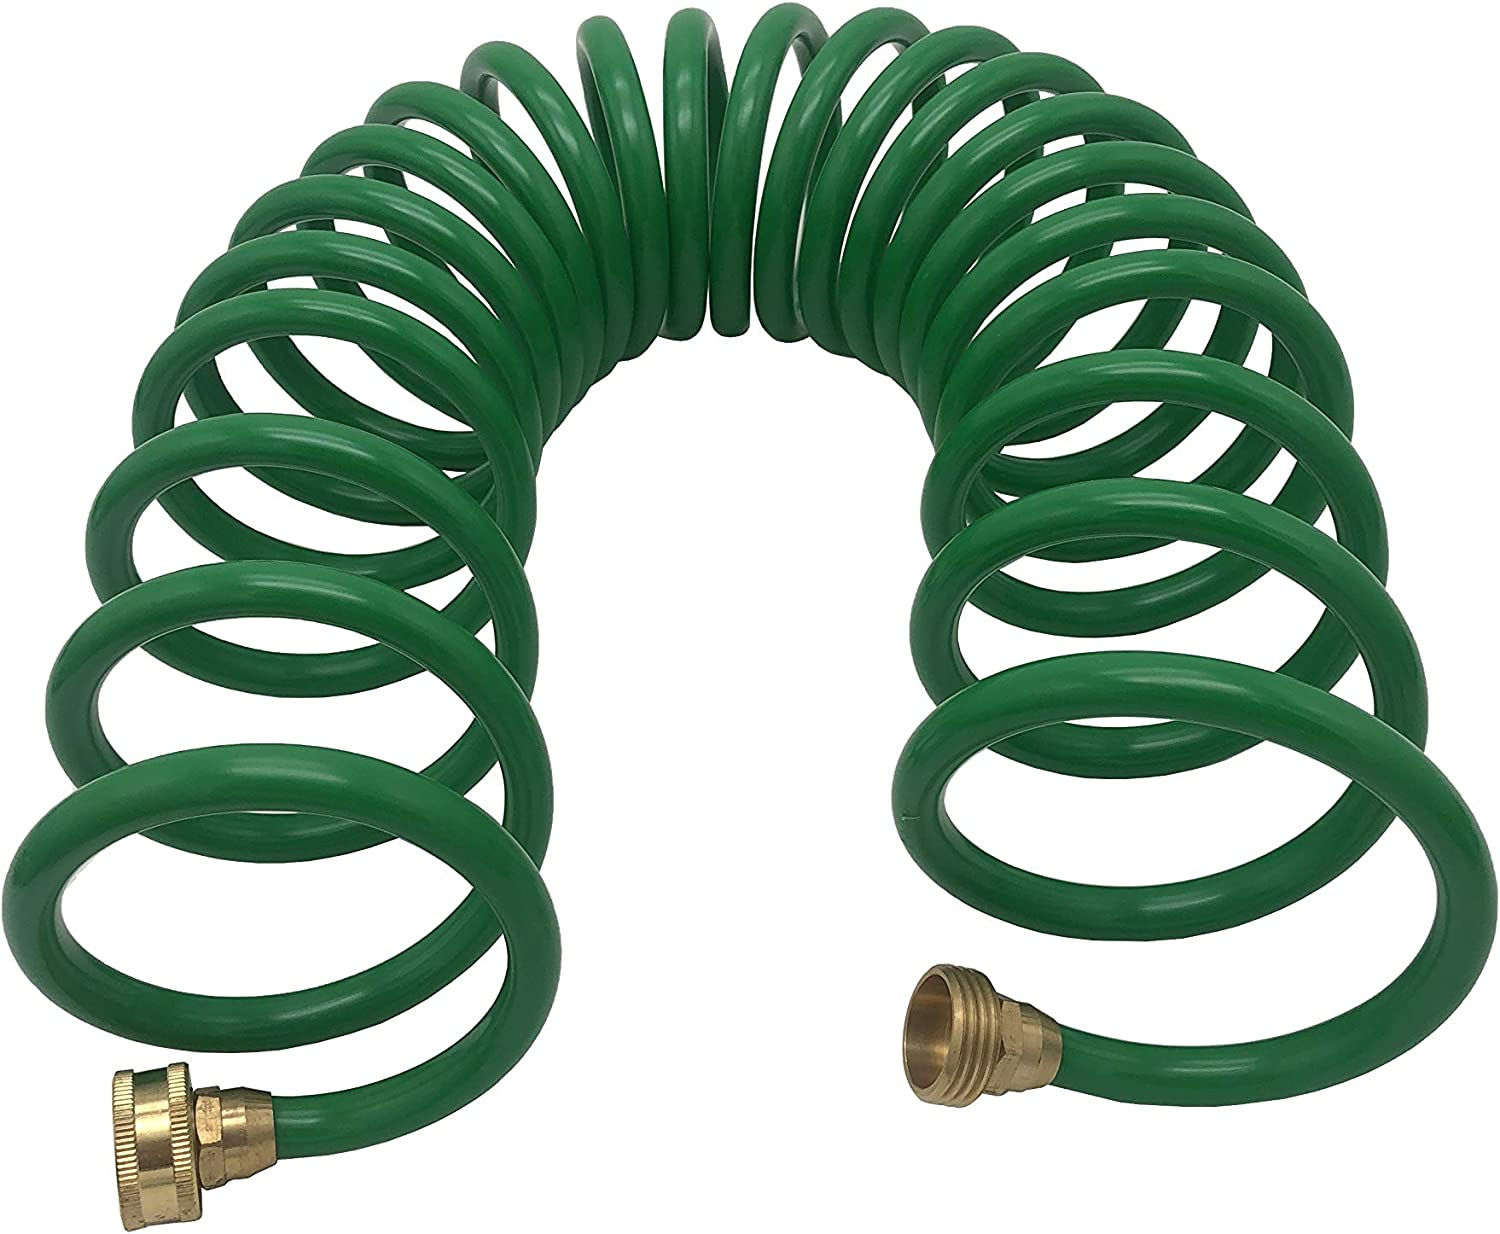 Powertech Coil Garden Water Hose Recoil Hose Garden Self Coiling Hose EVA Garden Hose Spring Garden Hose 25 FT with Brass Connectors